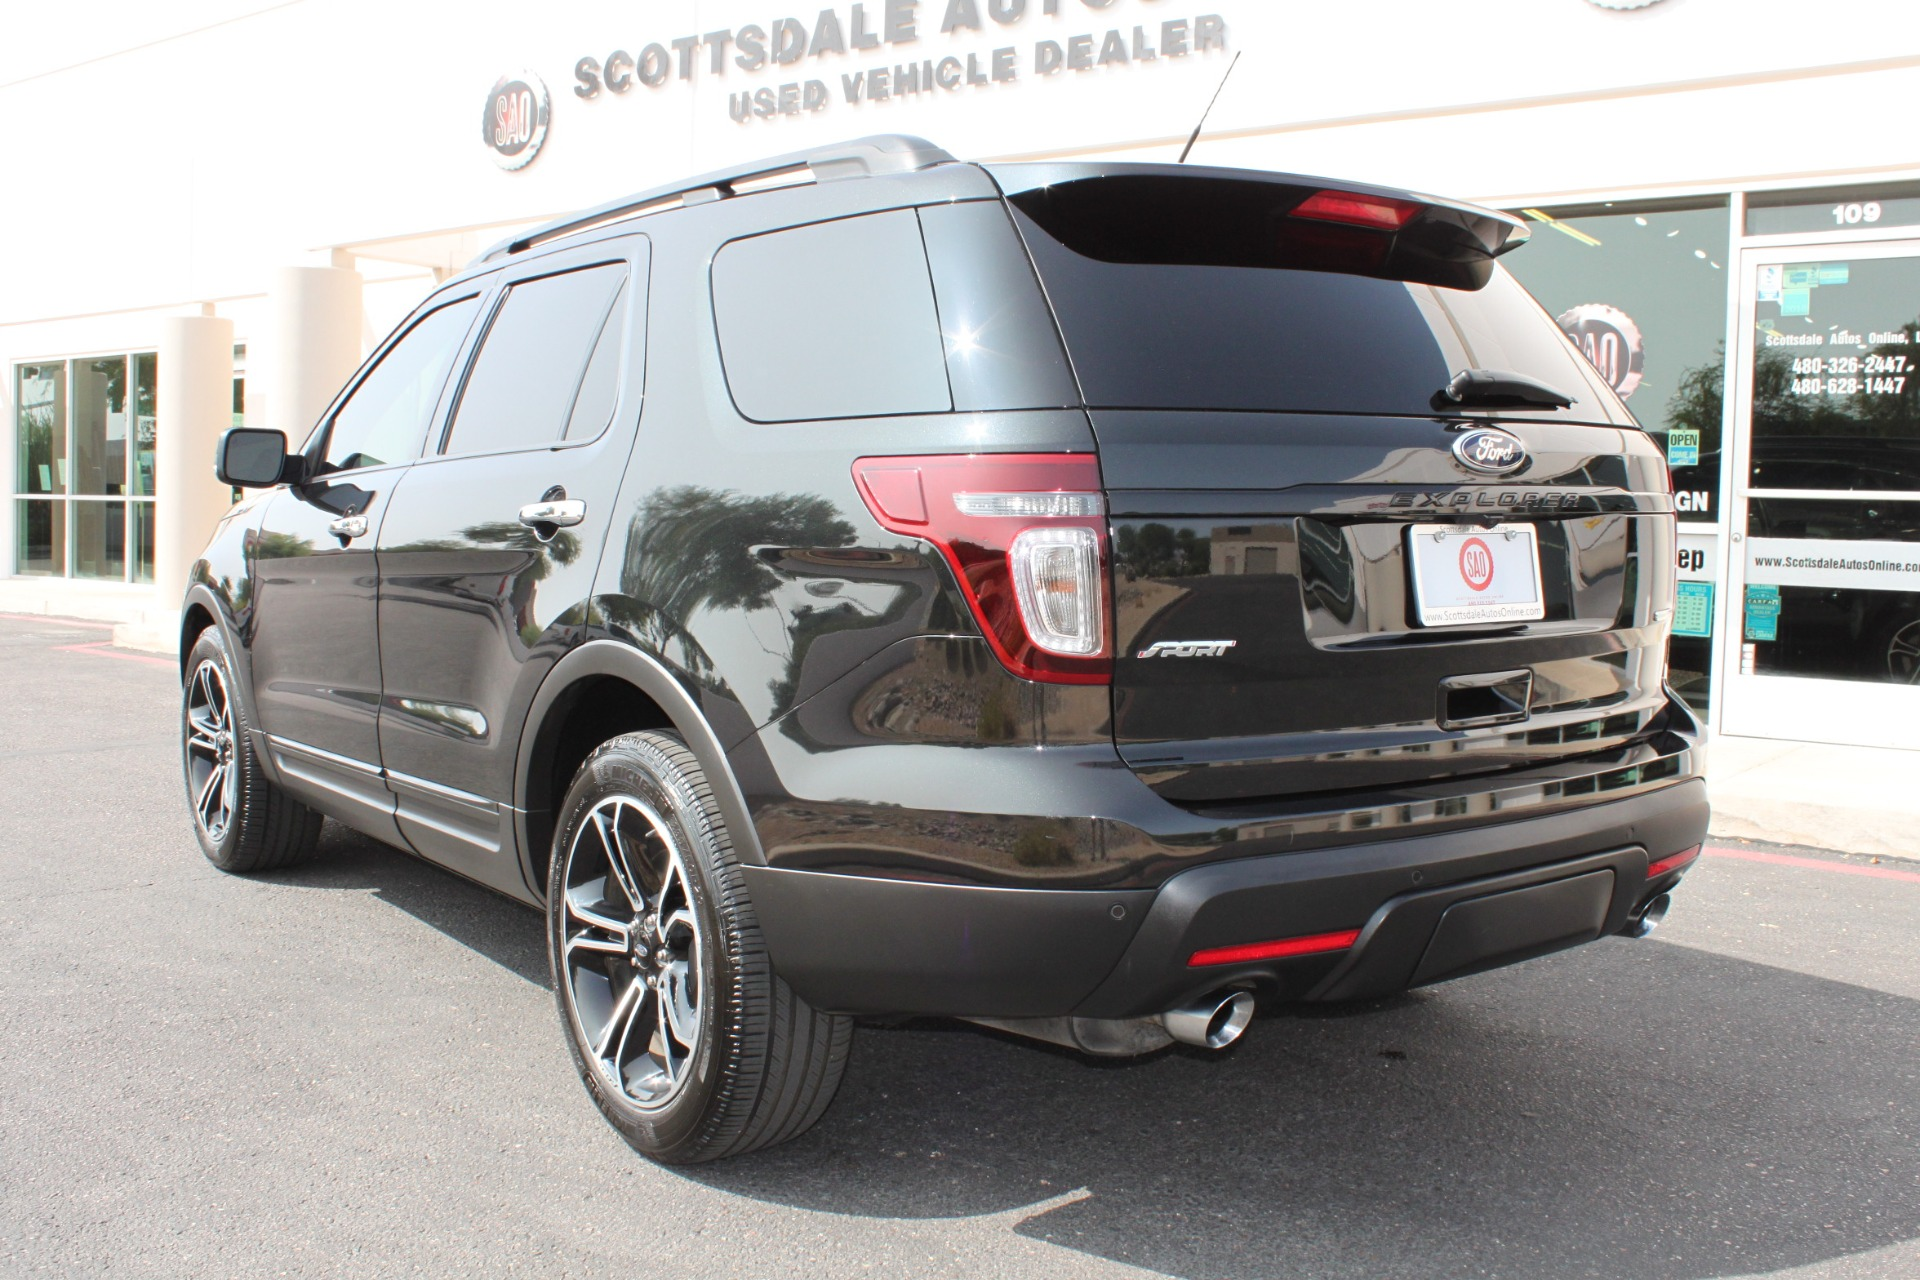 Used-2014-Ford-Explorer-Sport-4WD-Grand-Wagoneer